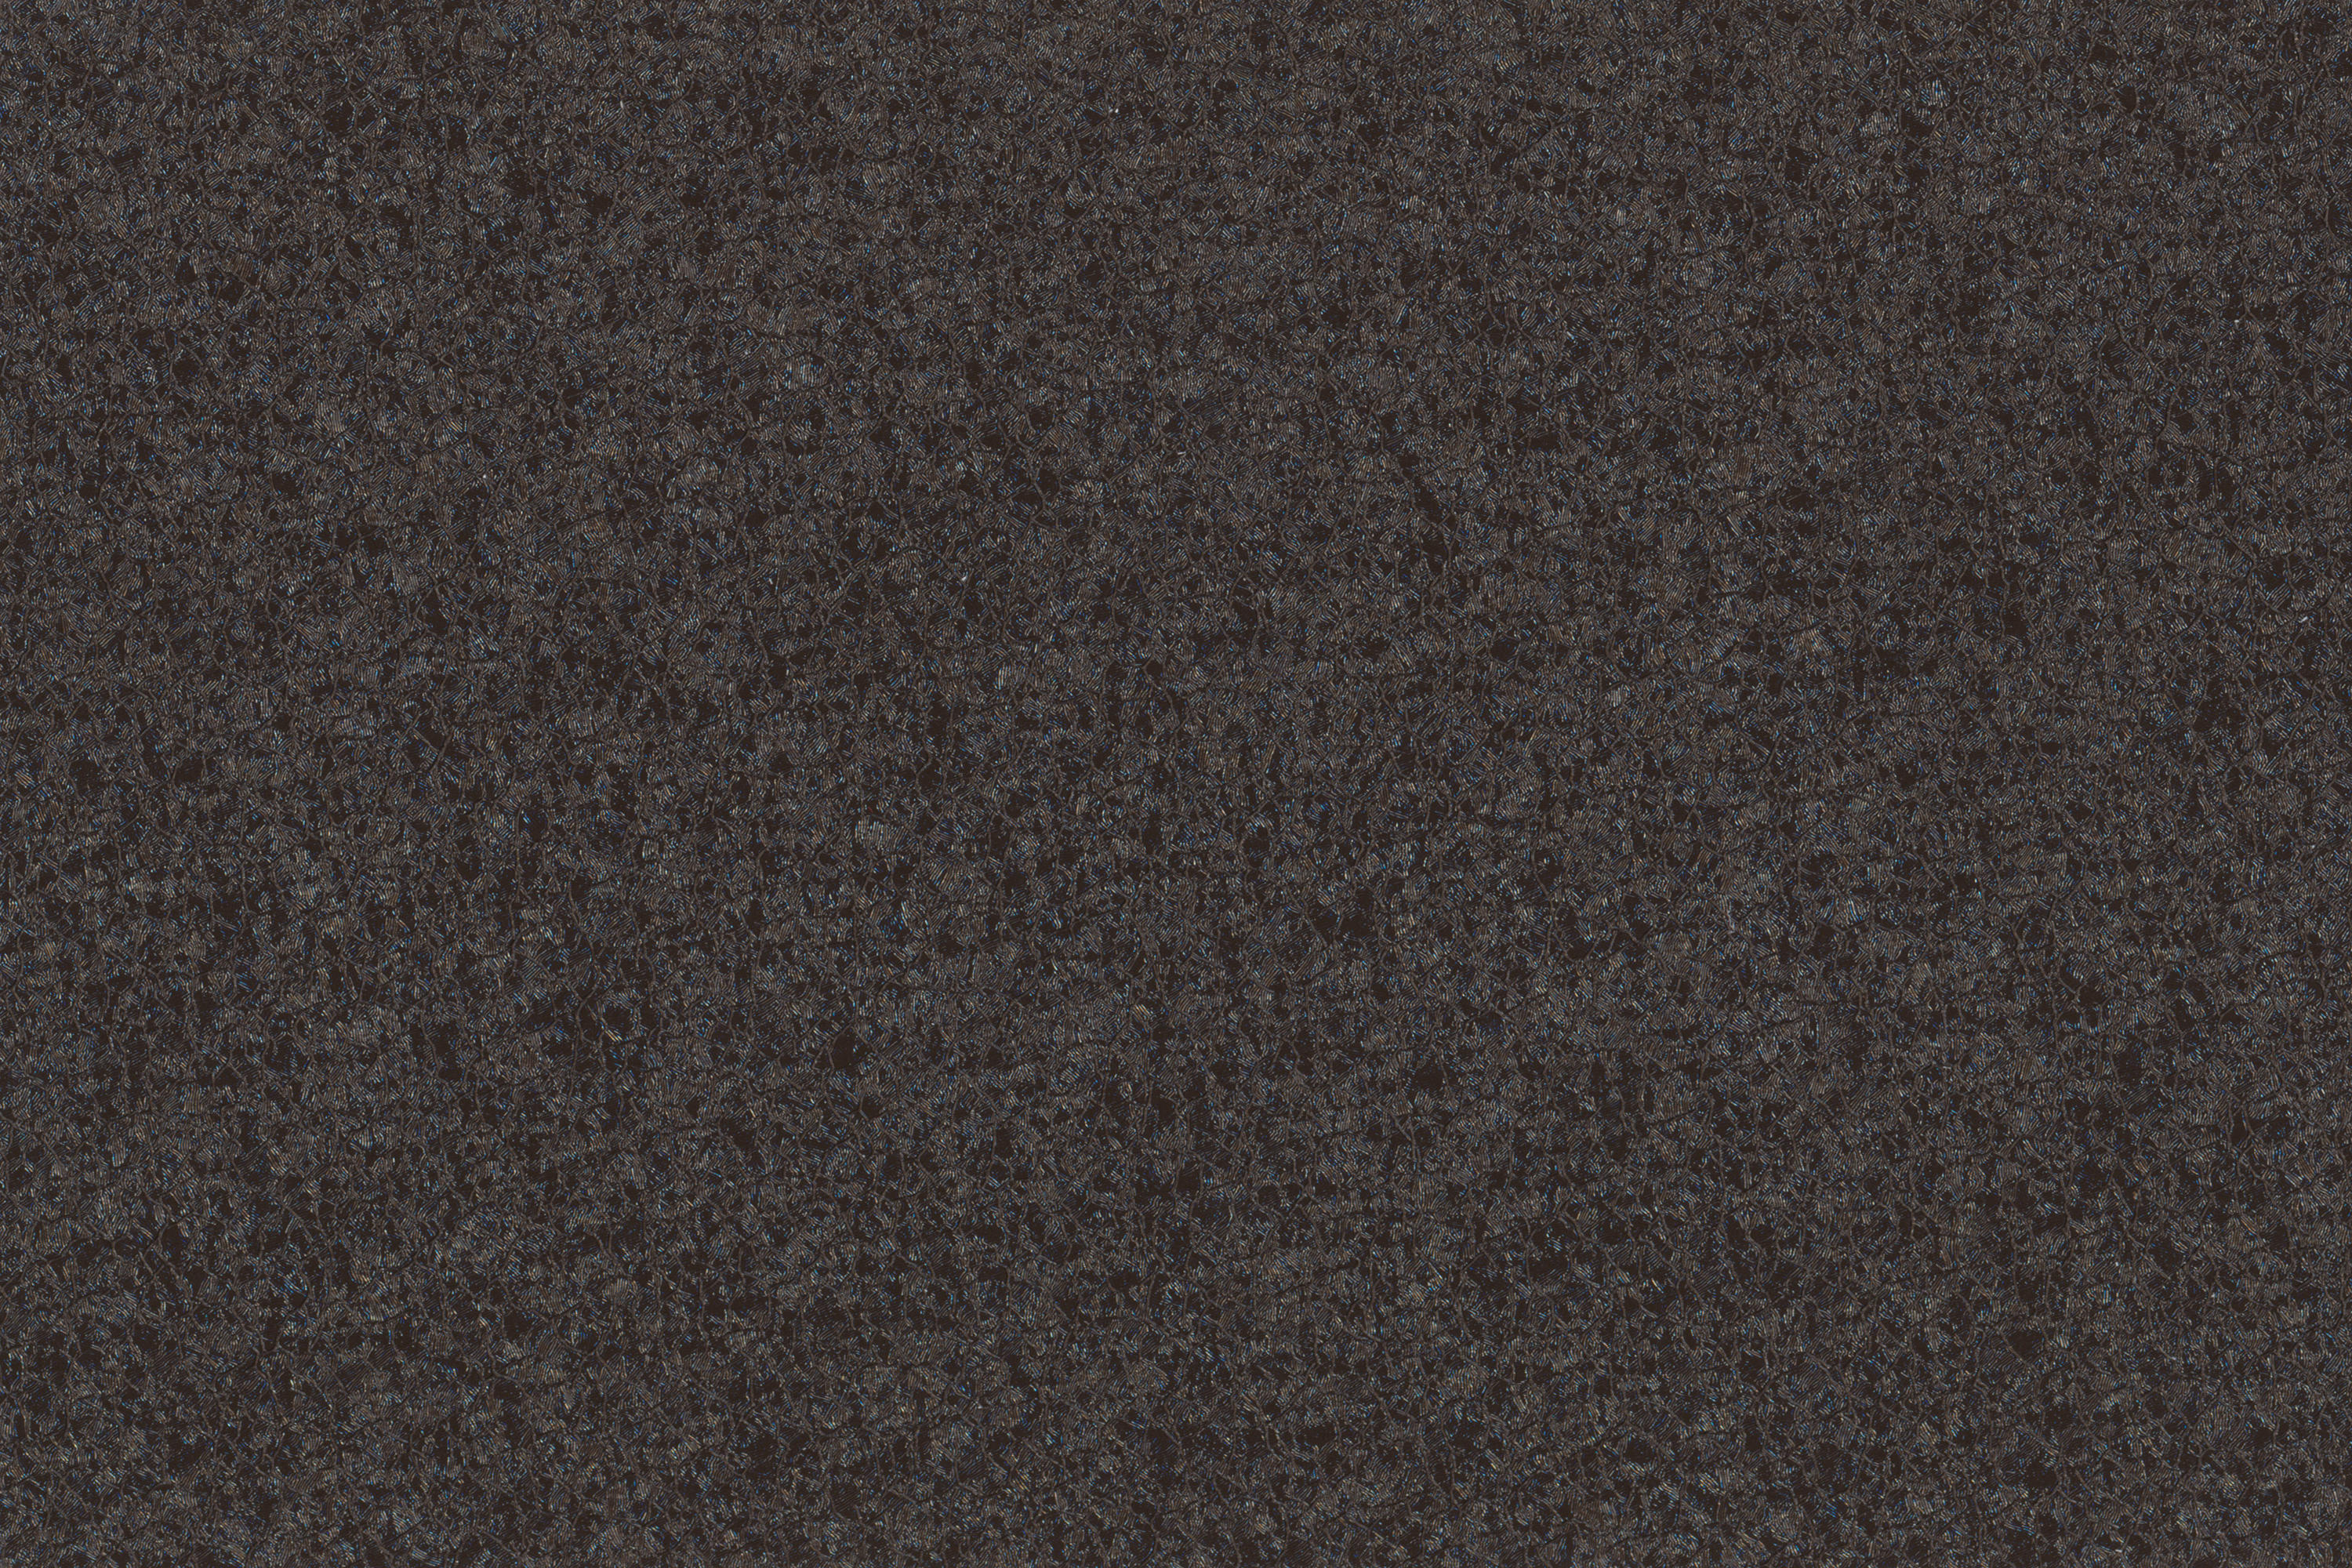 Granite Quartz Clic Dark Brown By Arcelormittal Sheets